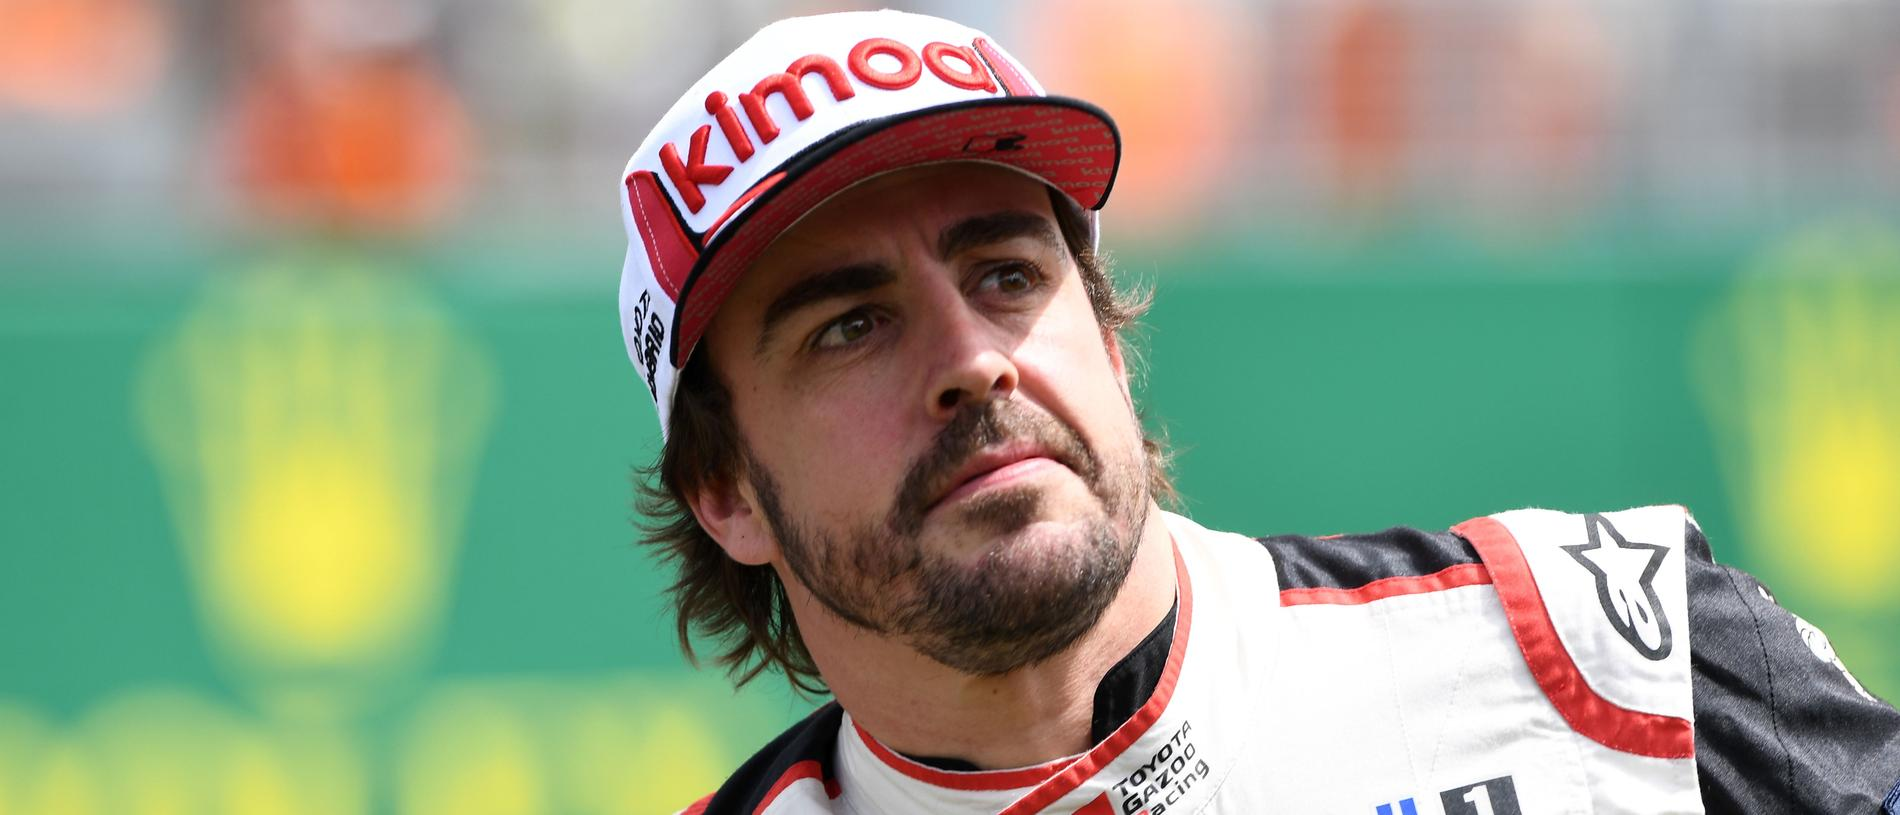 Spain's driver Fernando Alonso looks on after winning on his Toyota TS050 Hybrid LMP1 the 87th edition of the 24 Hours Le Mans endurance race on June 16, 2019, at Le Mans northwestern France. (Photo by Fred TANNEAU / AFP) (Photo credit should read FRED TANNEAU/AFP/Getty Images)